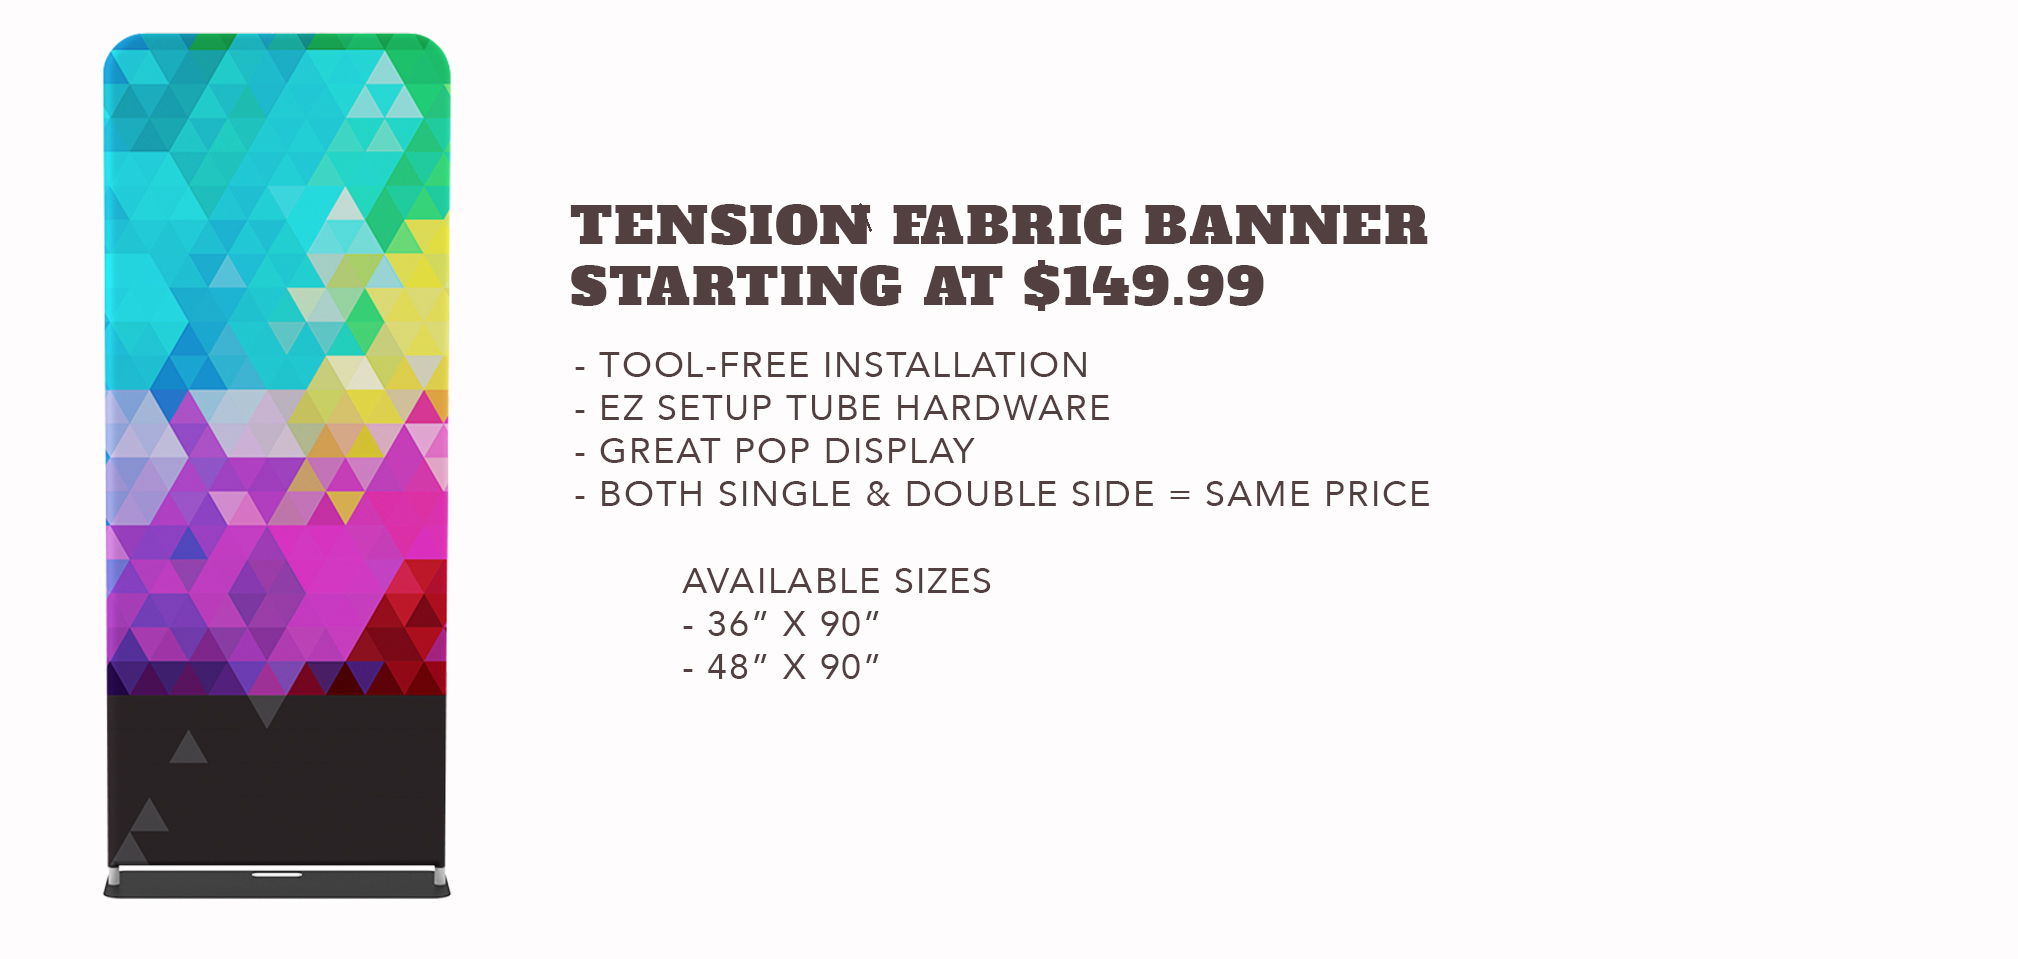 Tension Fabric Banner - Starting at $149.99